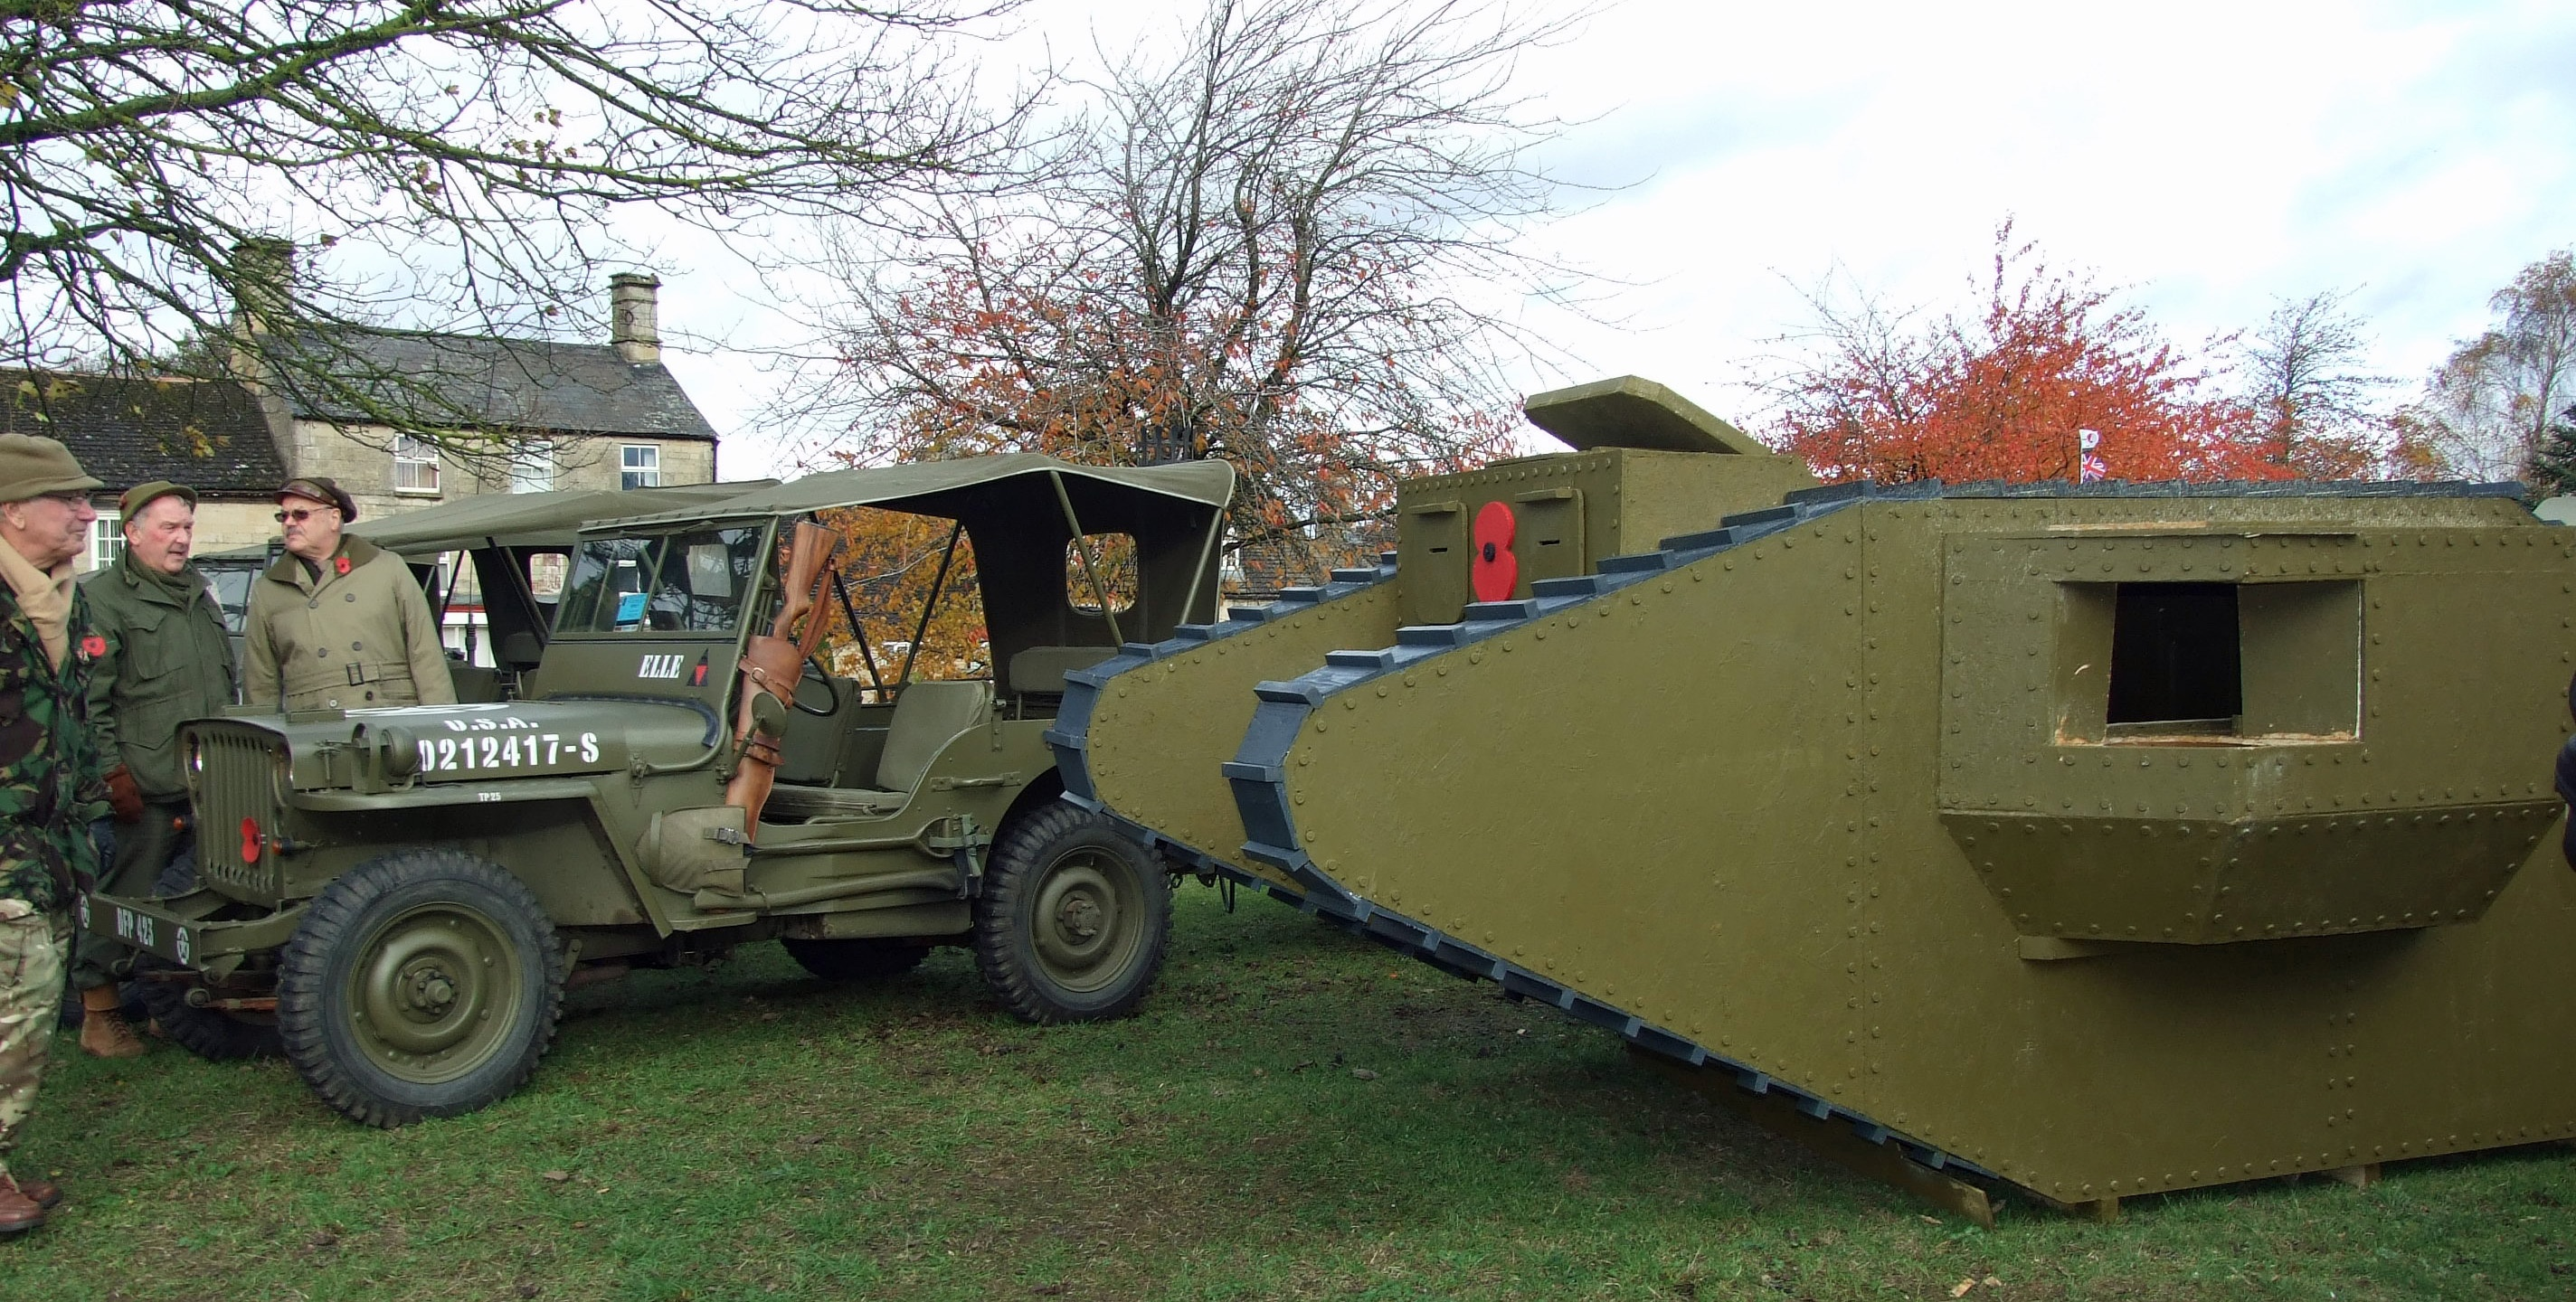 Weldon villagers built this two-thirds scale tank to mark the 100 years since the end of WW1